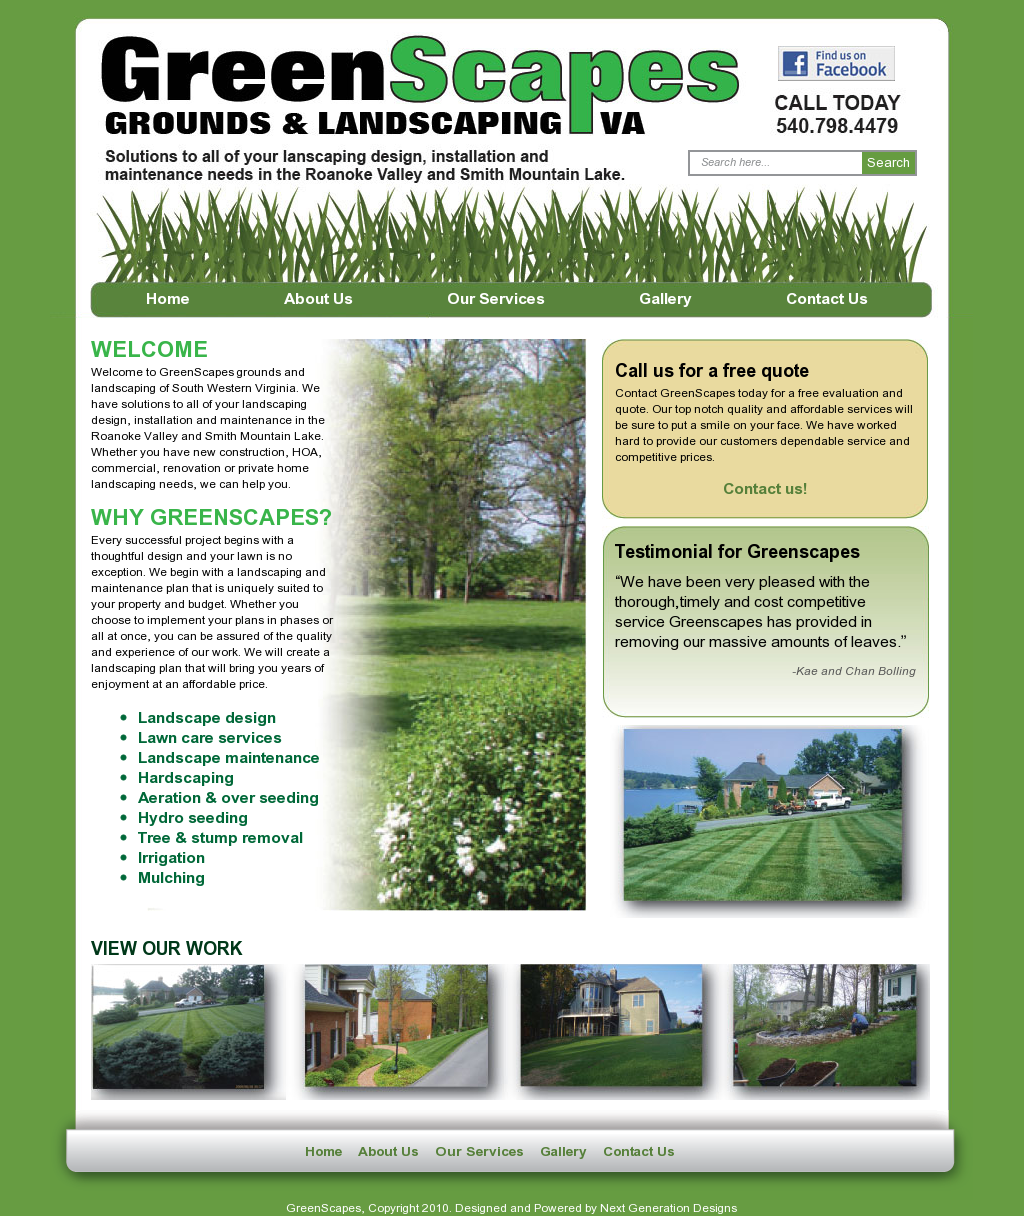 Landscaping lawn care lawn maintenance leaf removal aeration